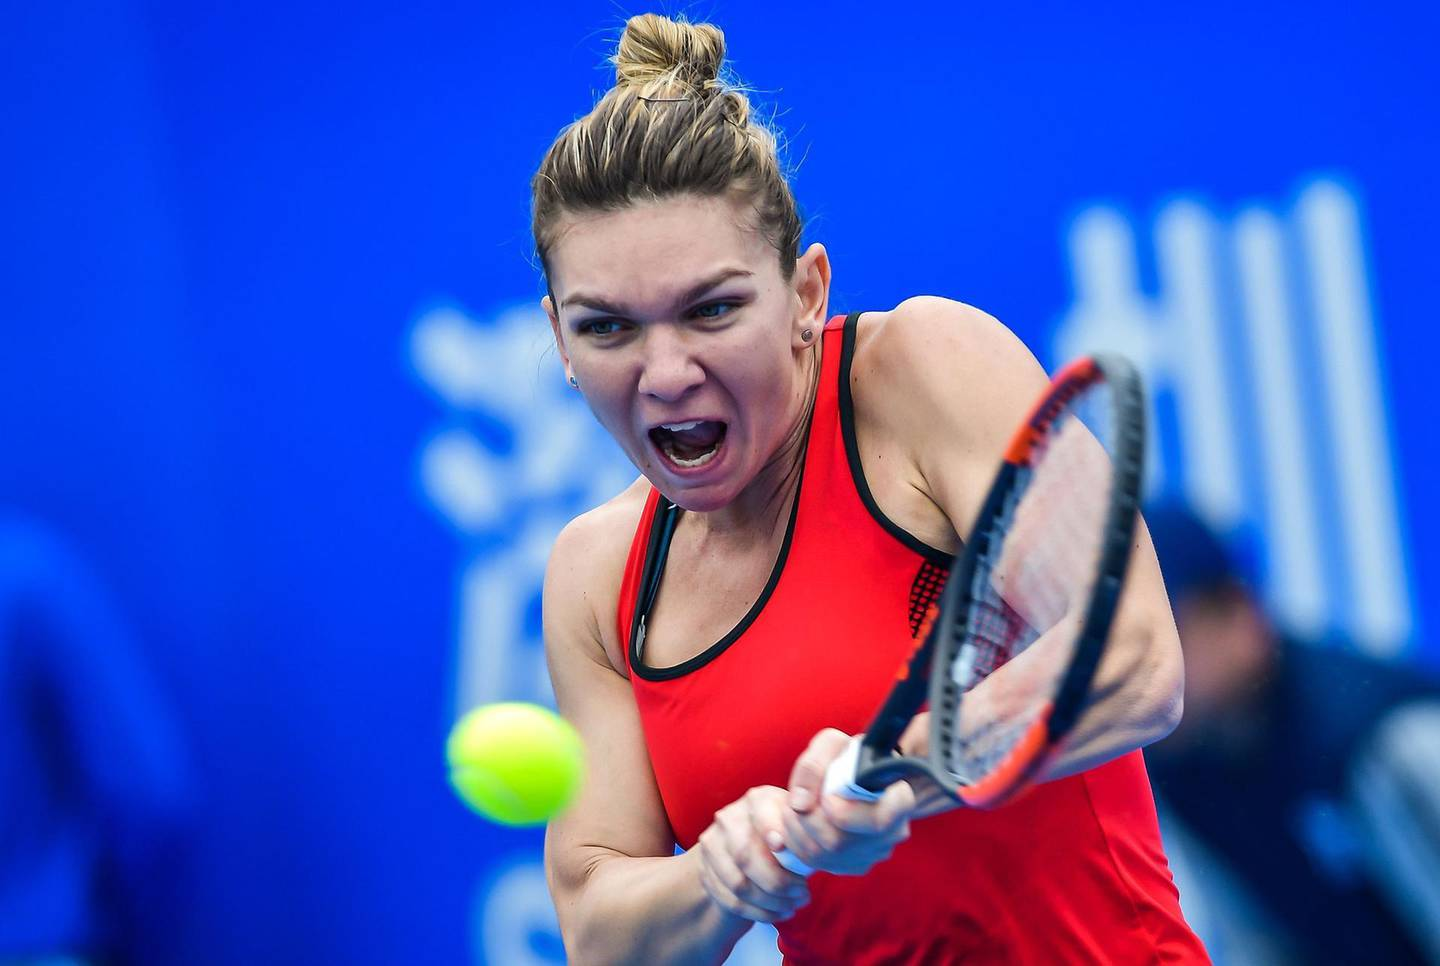 Simona Halep of Romania hits a return against Nicole Gibbs of the US in the first round of the Shenzhen Open tennis tournament in Shenzhen, in China's southern Guangdong province on January 1, 2018. / AFP PHOTO / - / China OUT